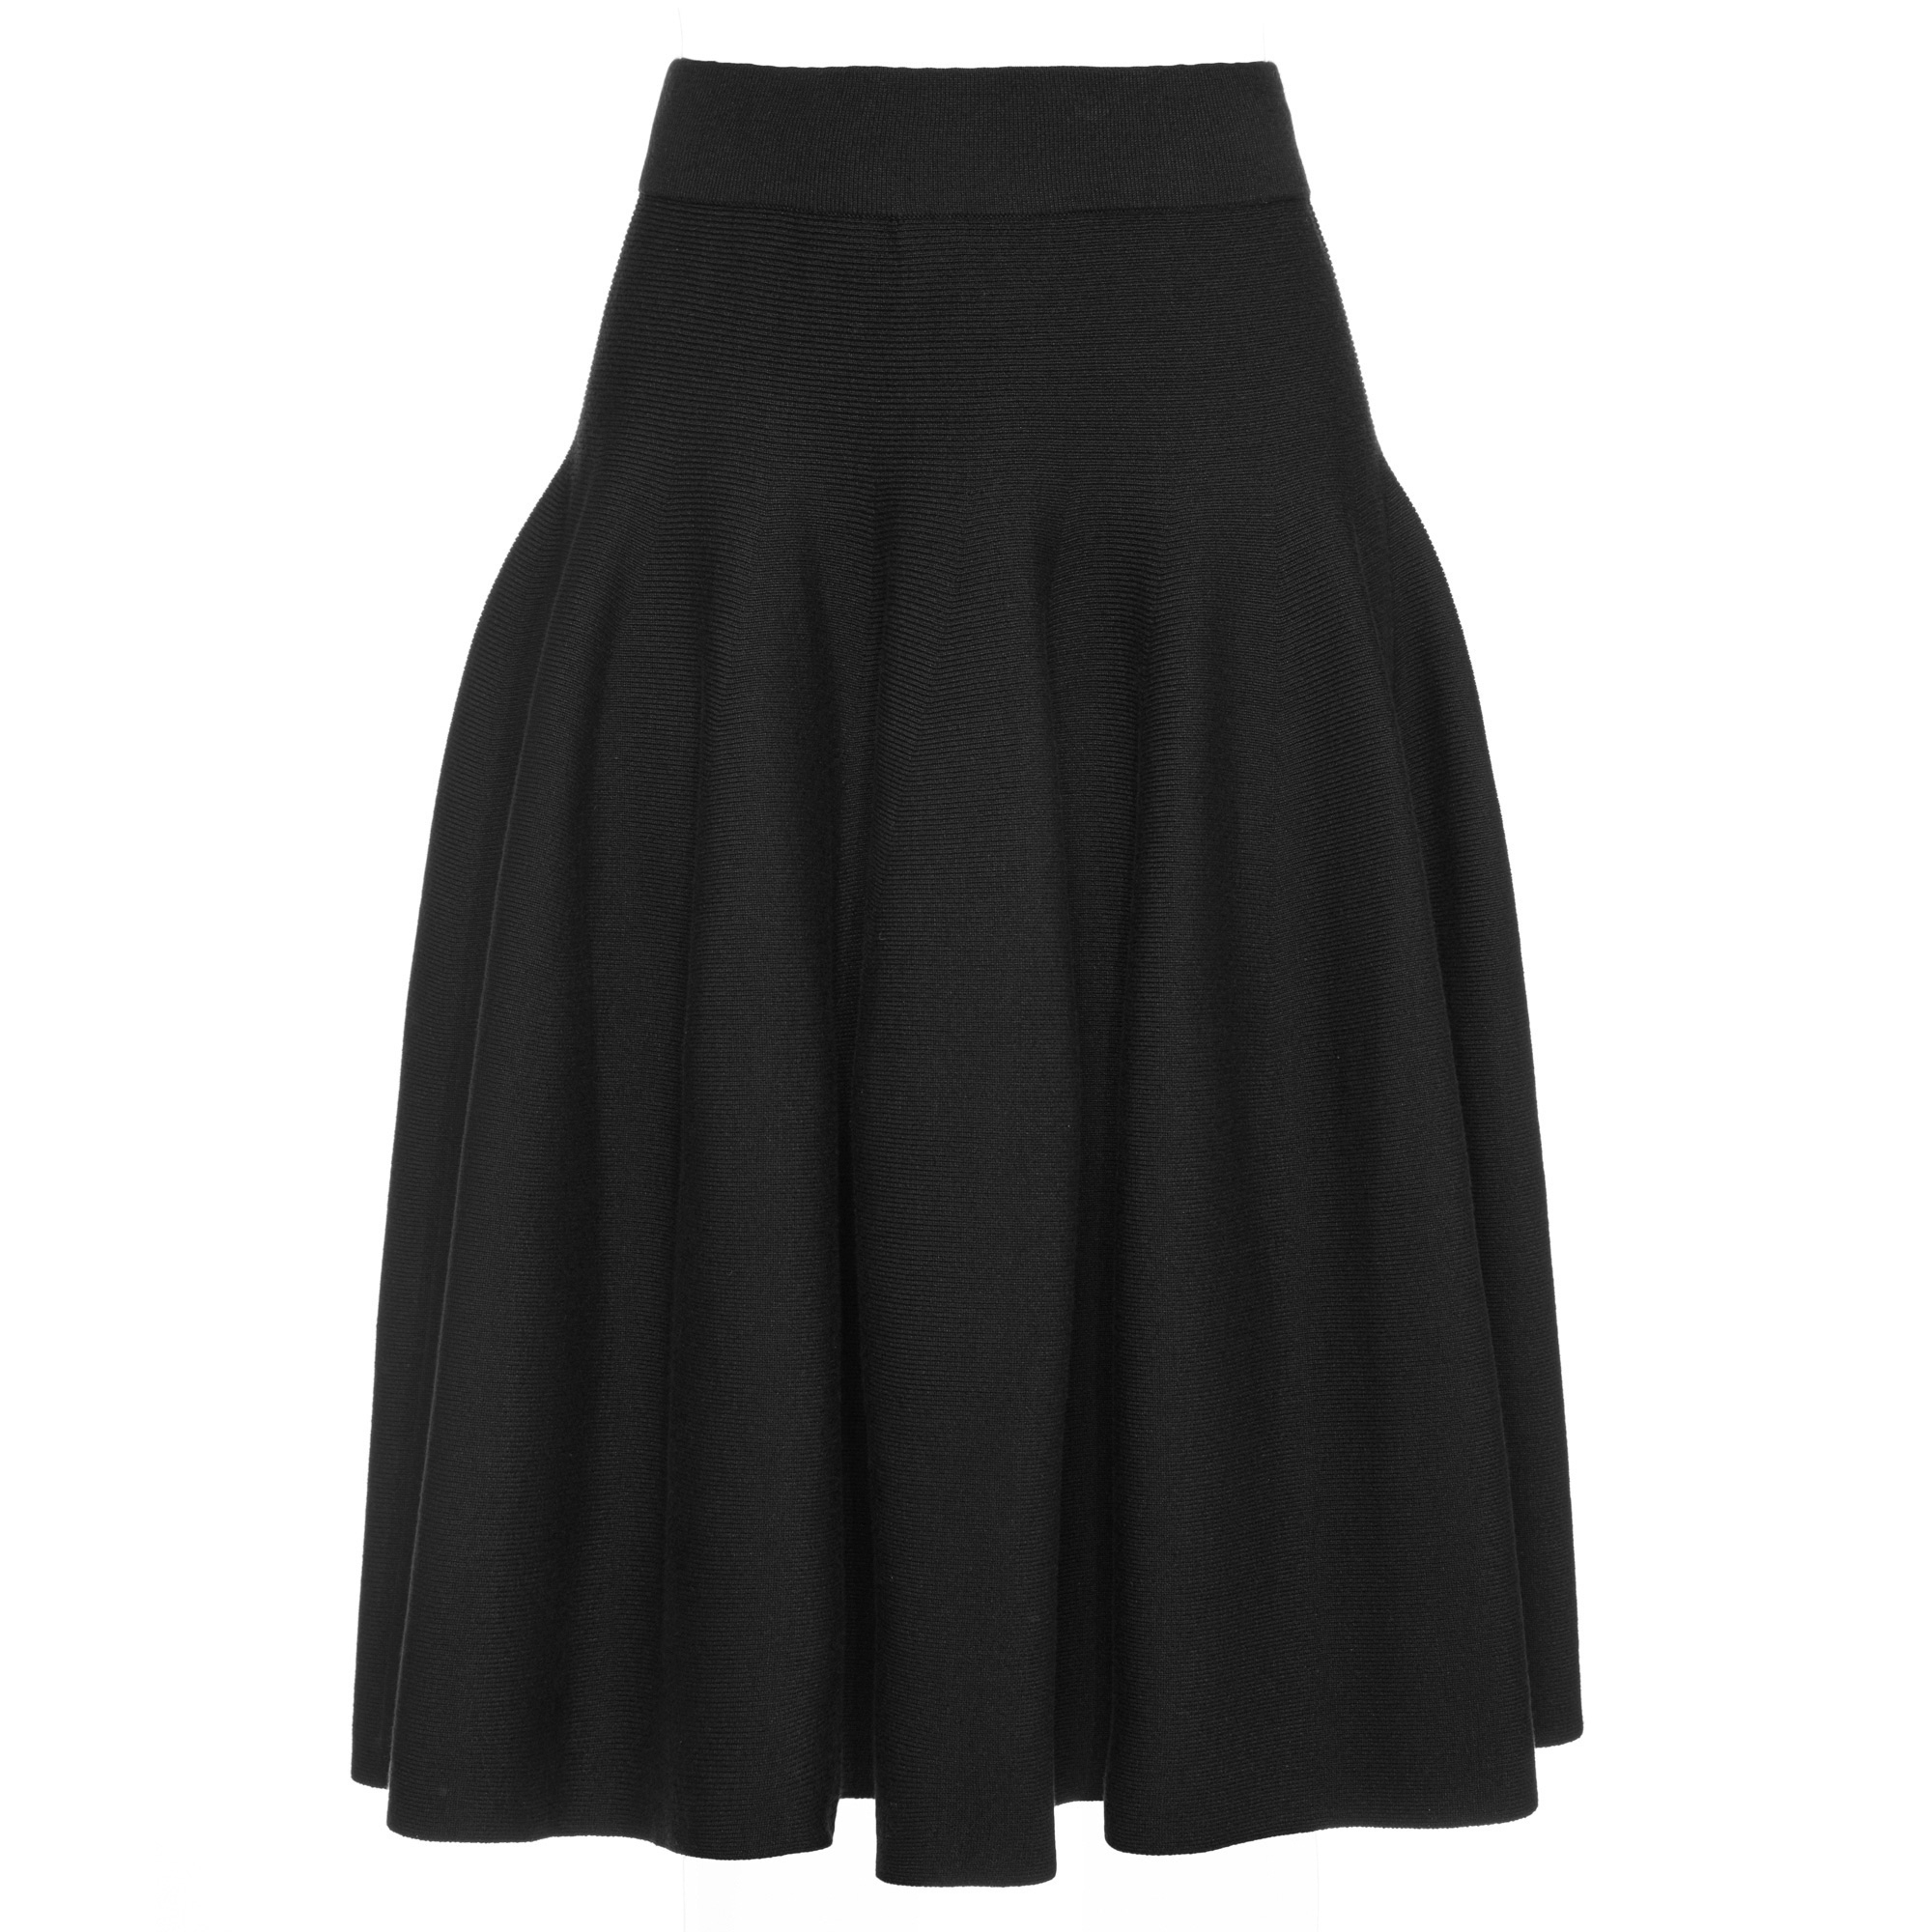 TIANTIAN Black Knit Skater Skirt - WOMEN from Fashion Crossover ... 142f223f6